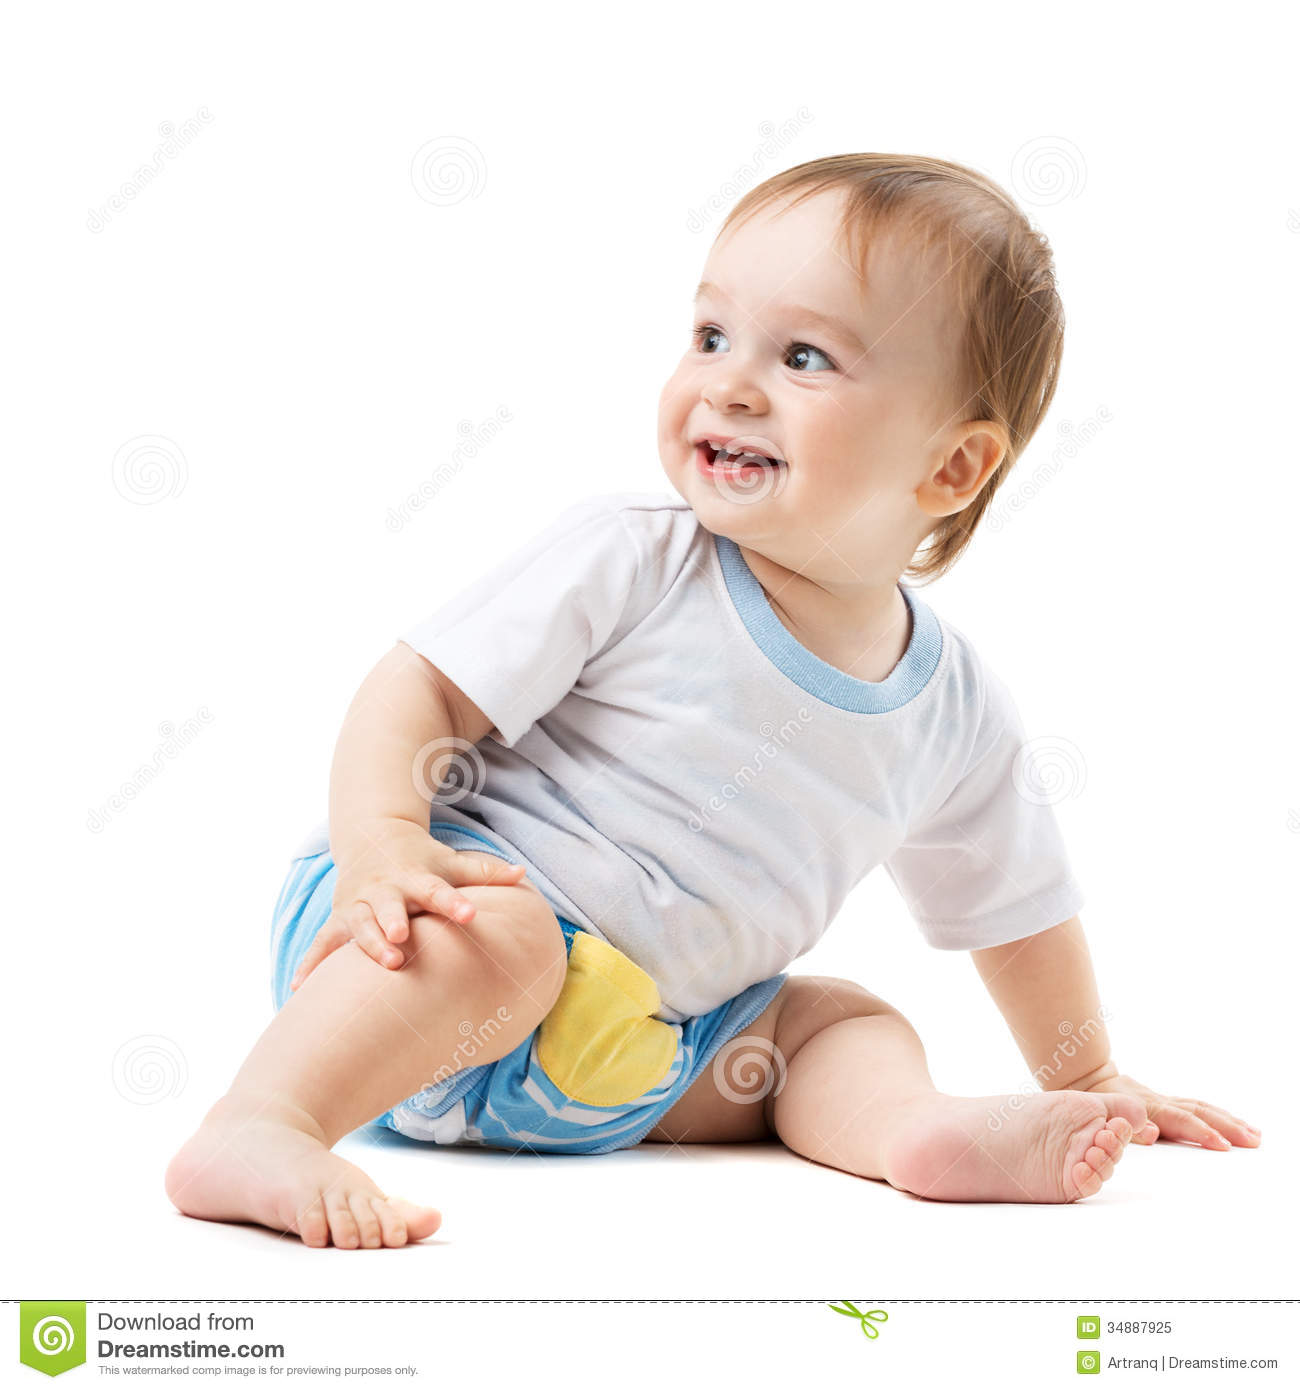 Baby Sitting And Looking Sideways Royalty Free Stock Photo ...